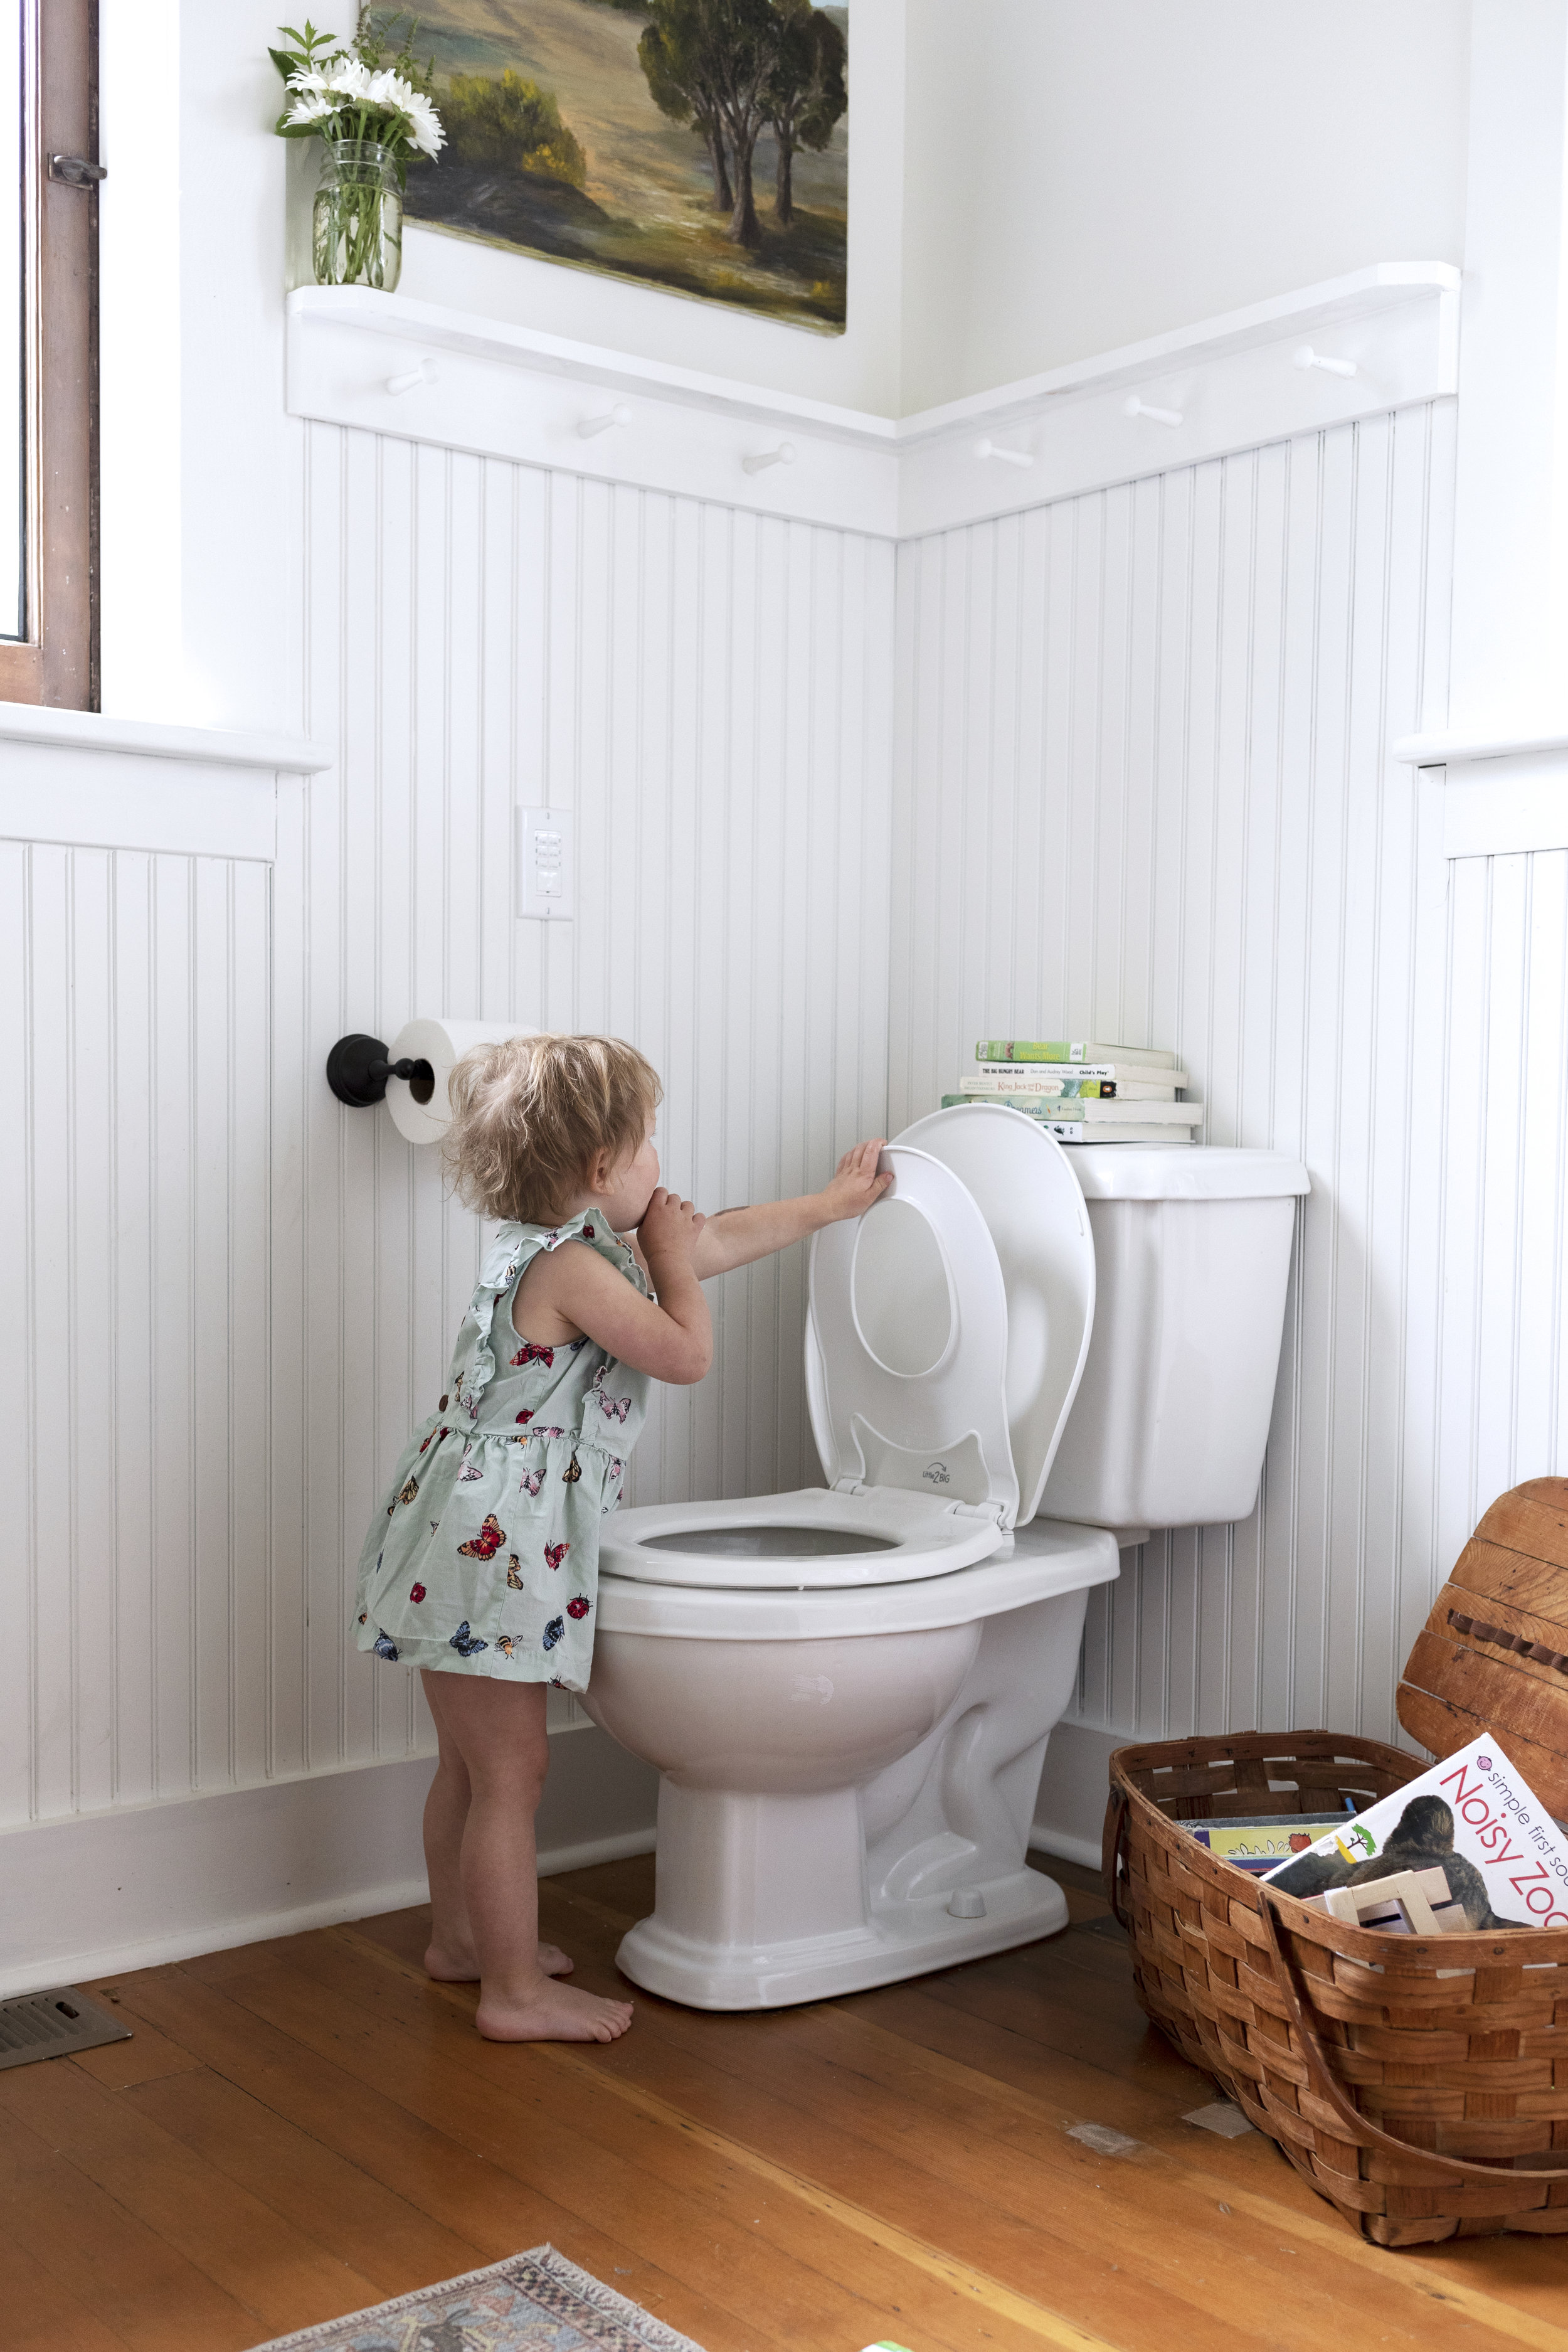 The Grit and Polish - Farmhouse Bathroom Potty Training D 8.2.jpg